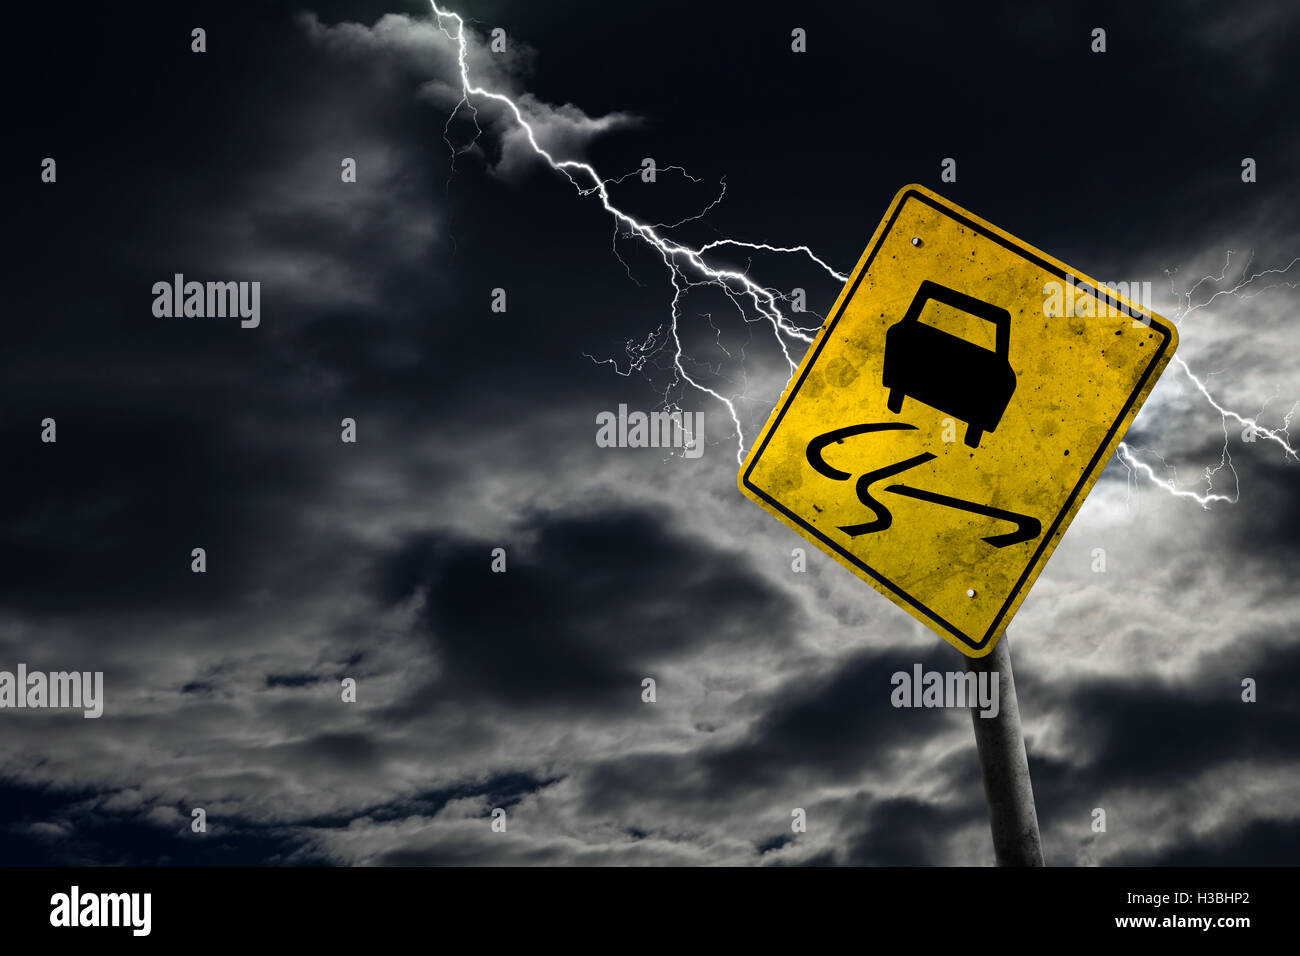 Slippery when wet road sign against a stormy background with lightning and copy space. Dirty and angled sign adds - Stock Image